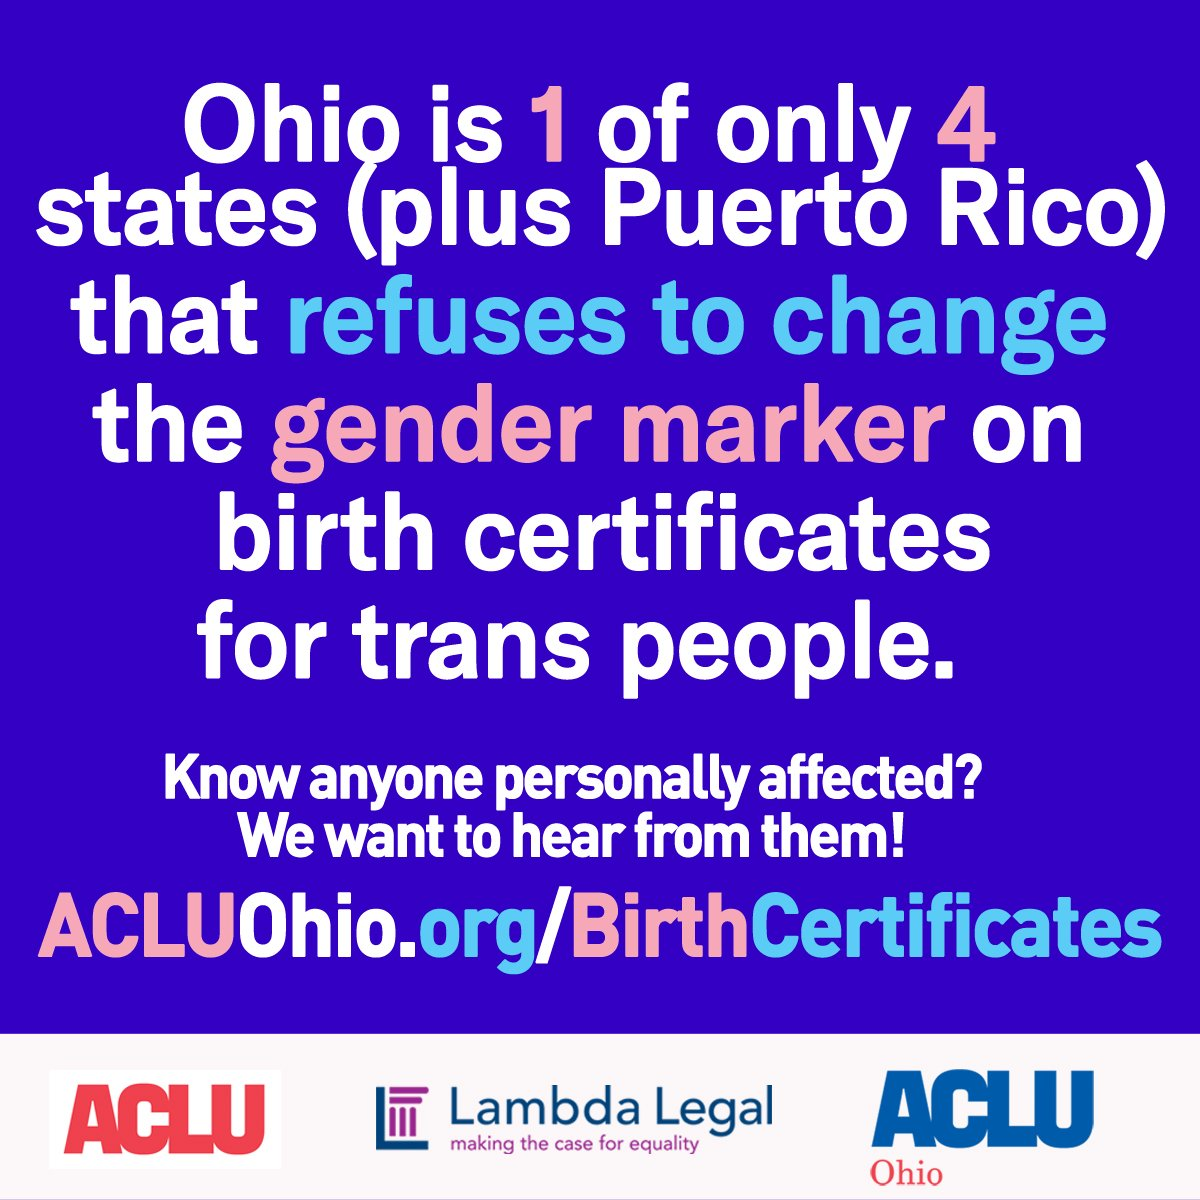 Aclu of ohio on twitter ohios birth certificate policy is aclu of ohio on twitter ohios birth certificate policy is discriminatory against transgender and gender non conforming ohioans were trying to change aiddatafo Image collections